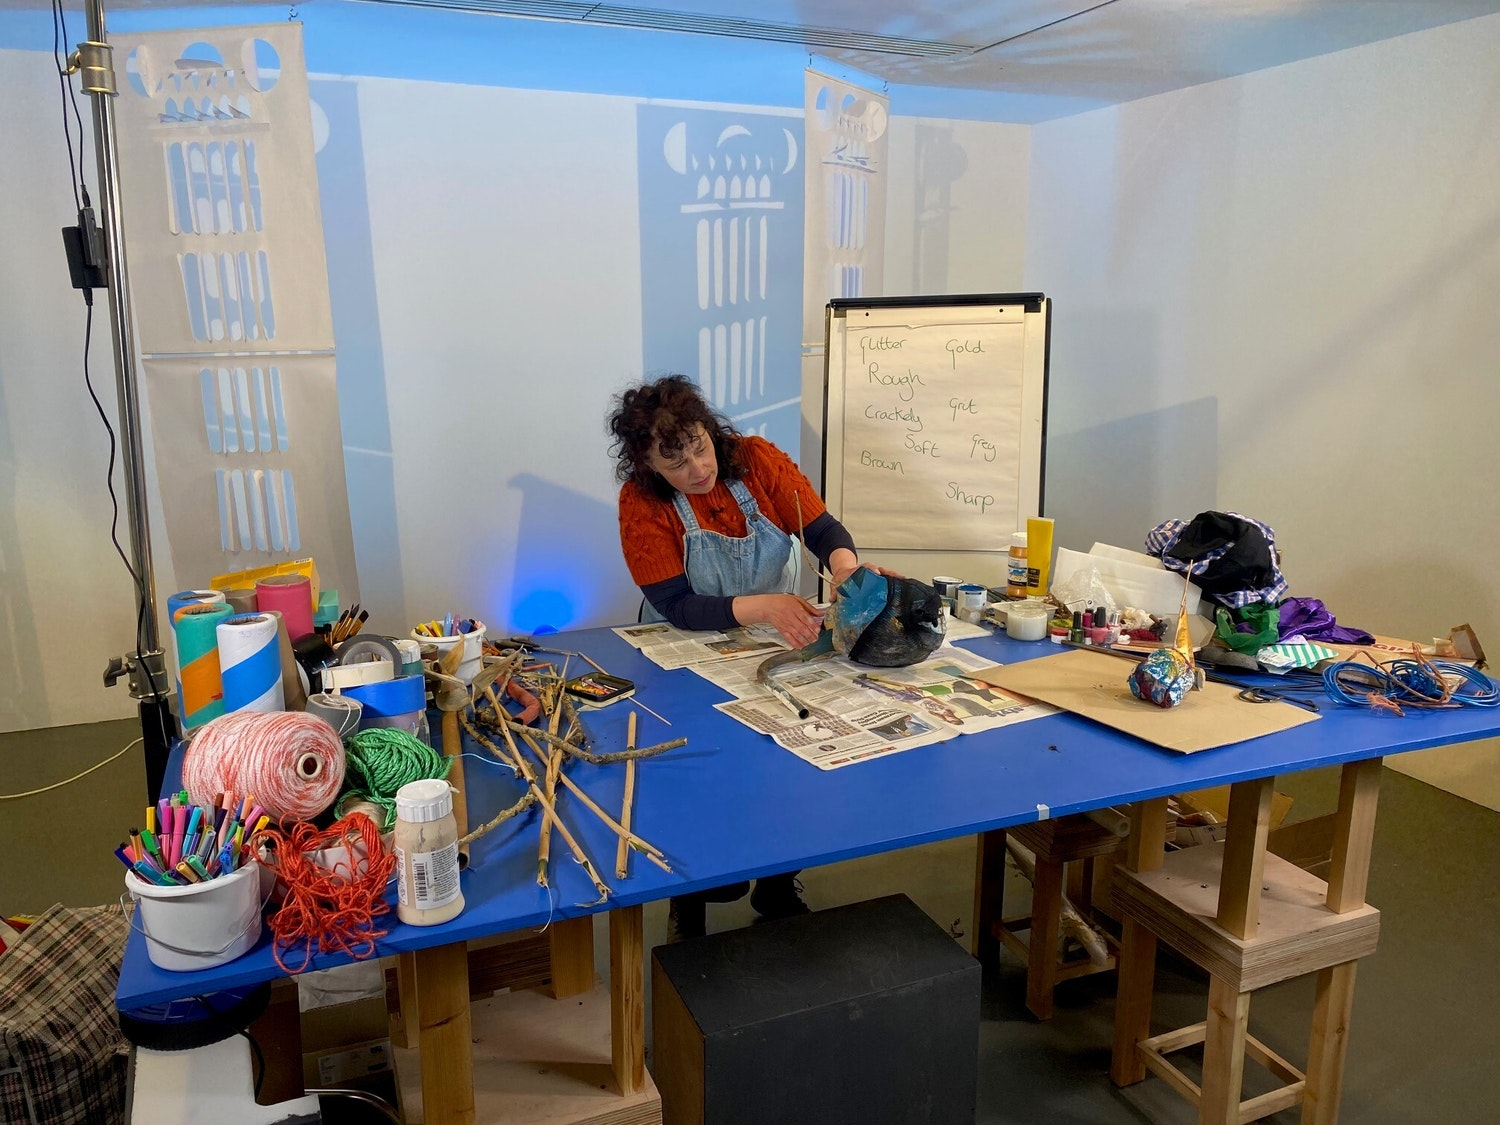 Sovay Berriman sculptural sketching with found objects workshop pics